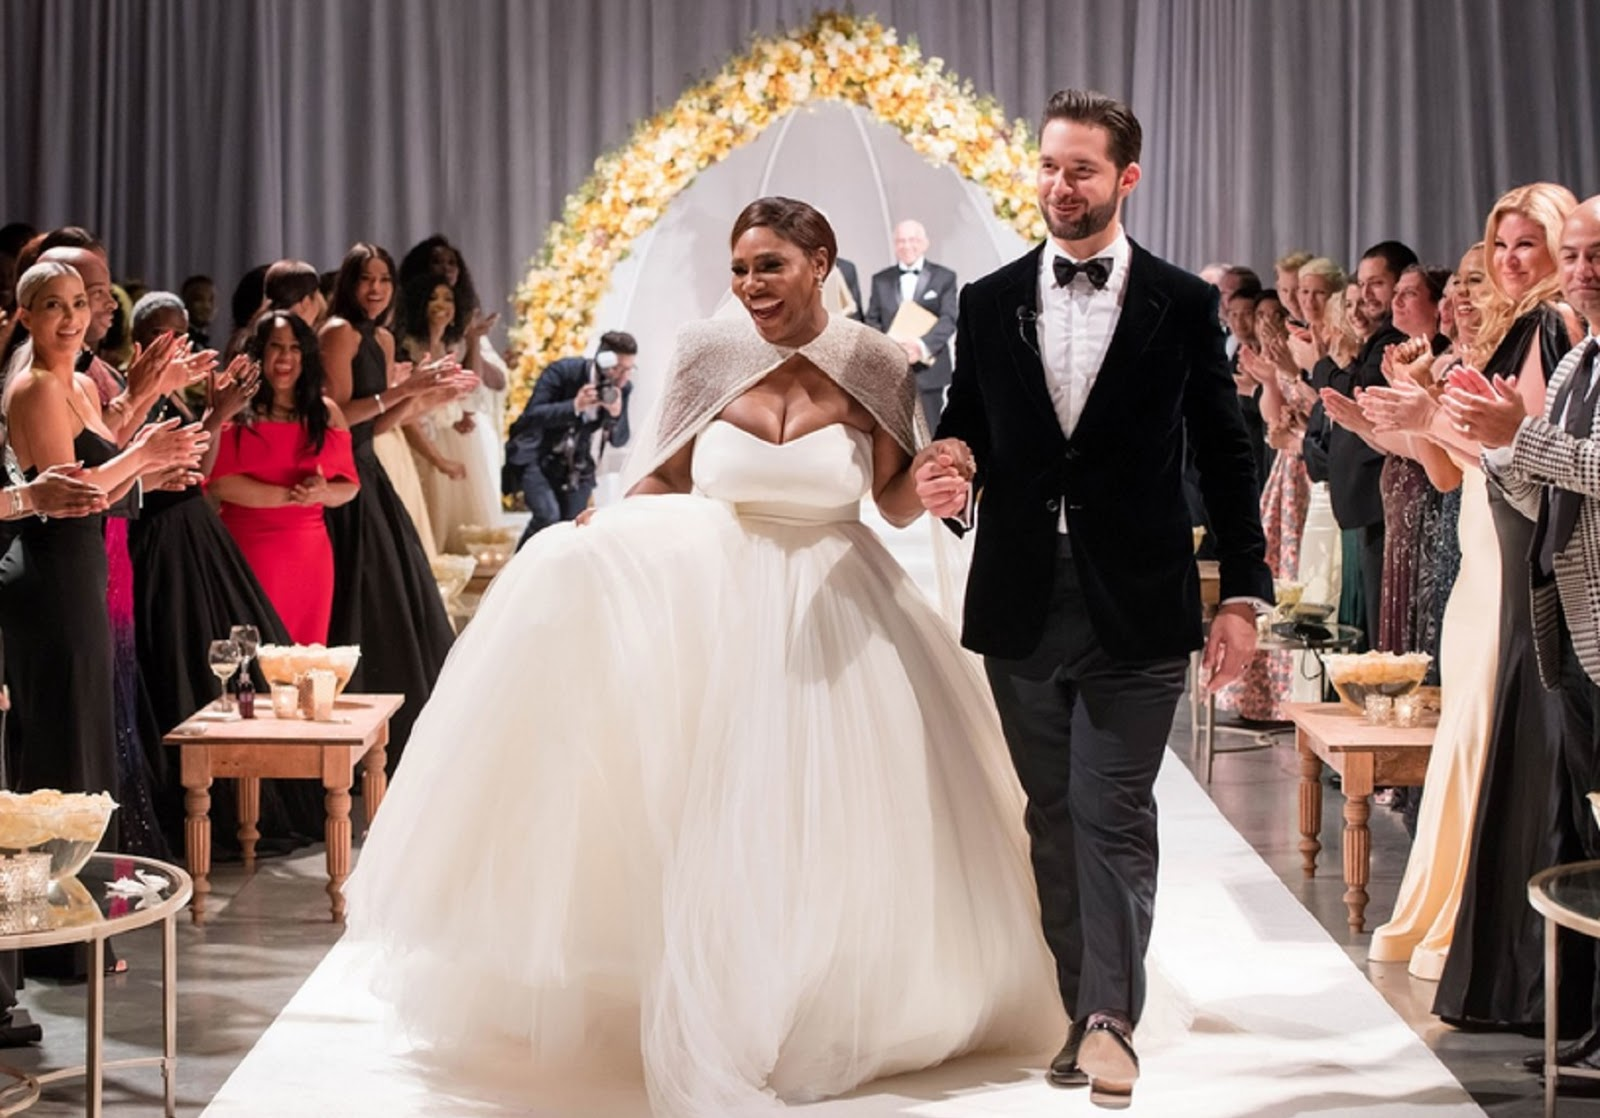 SERENA WILLIAMS, ALEXIS OHANIAN WEDDING